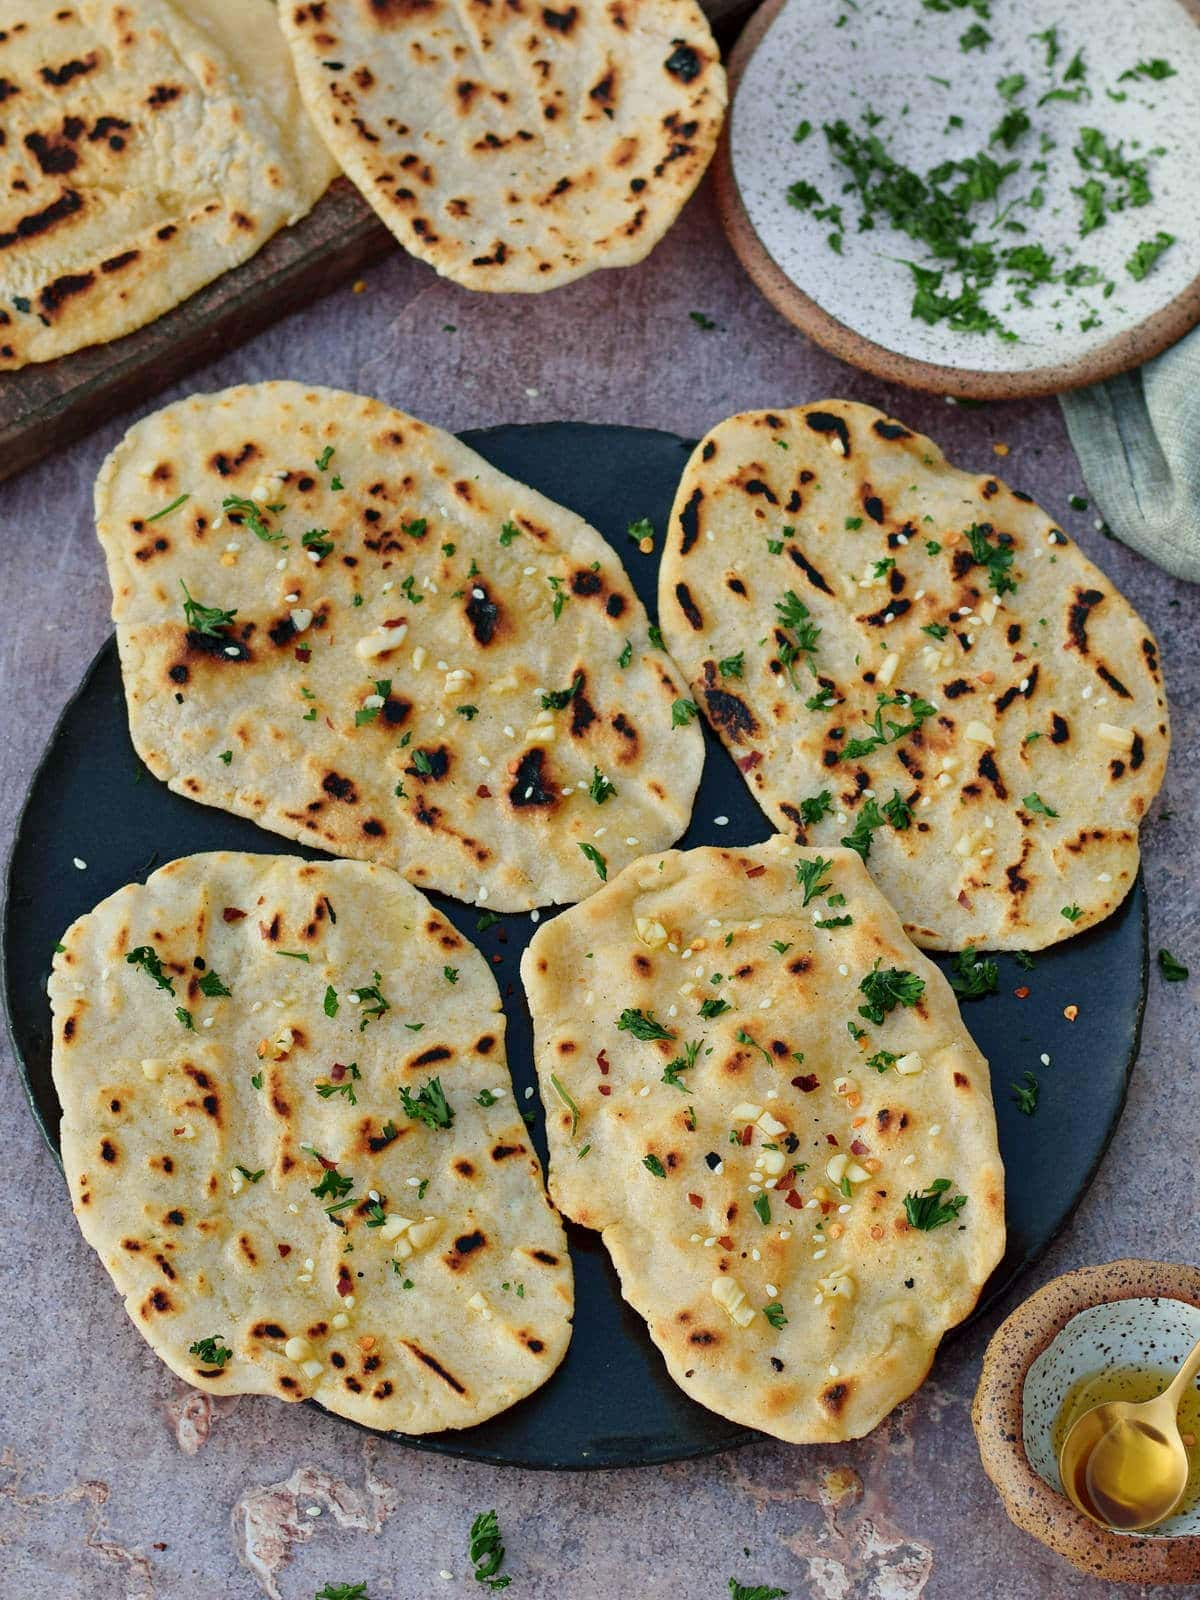 4 pieces of vegan gluten-free naan on black plate with herbs and garlic